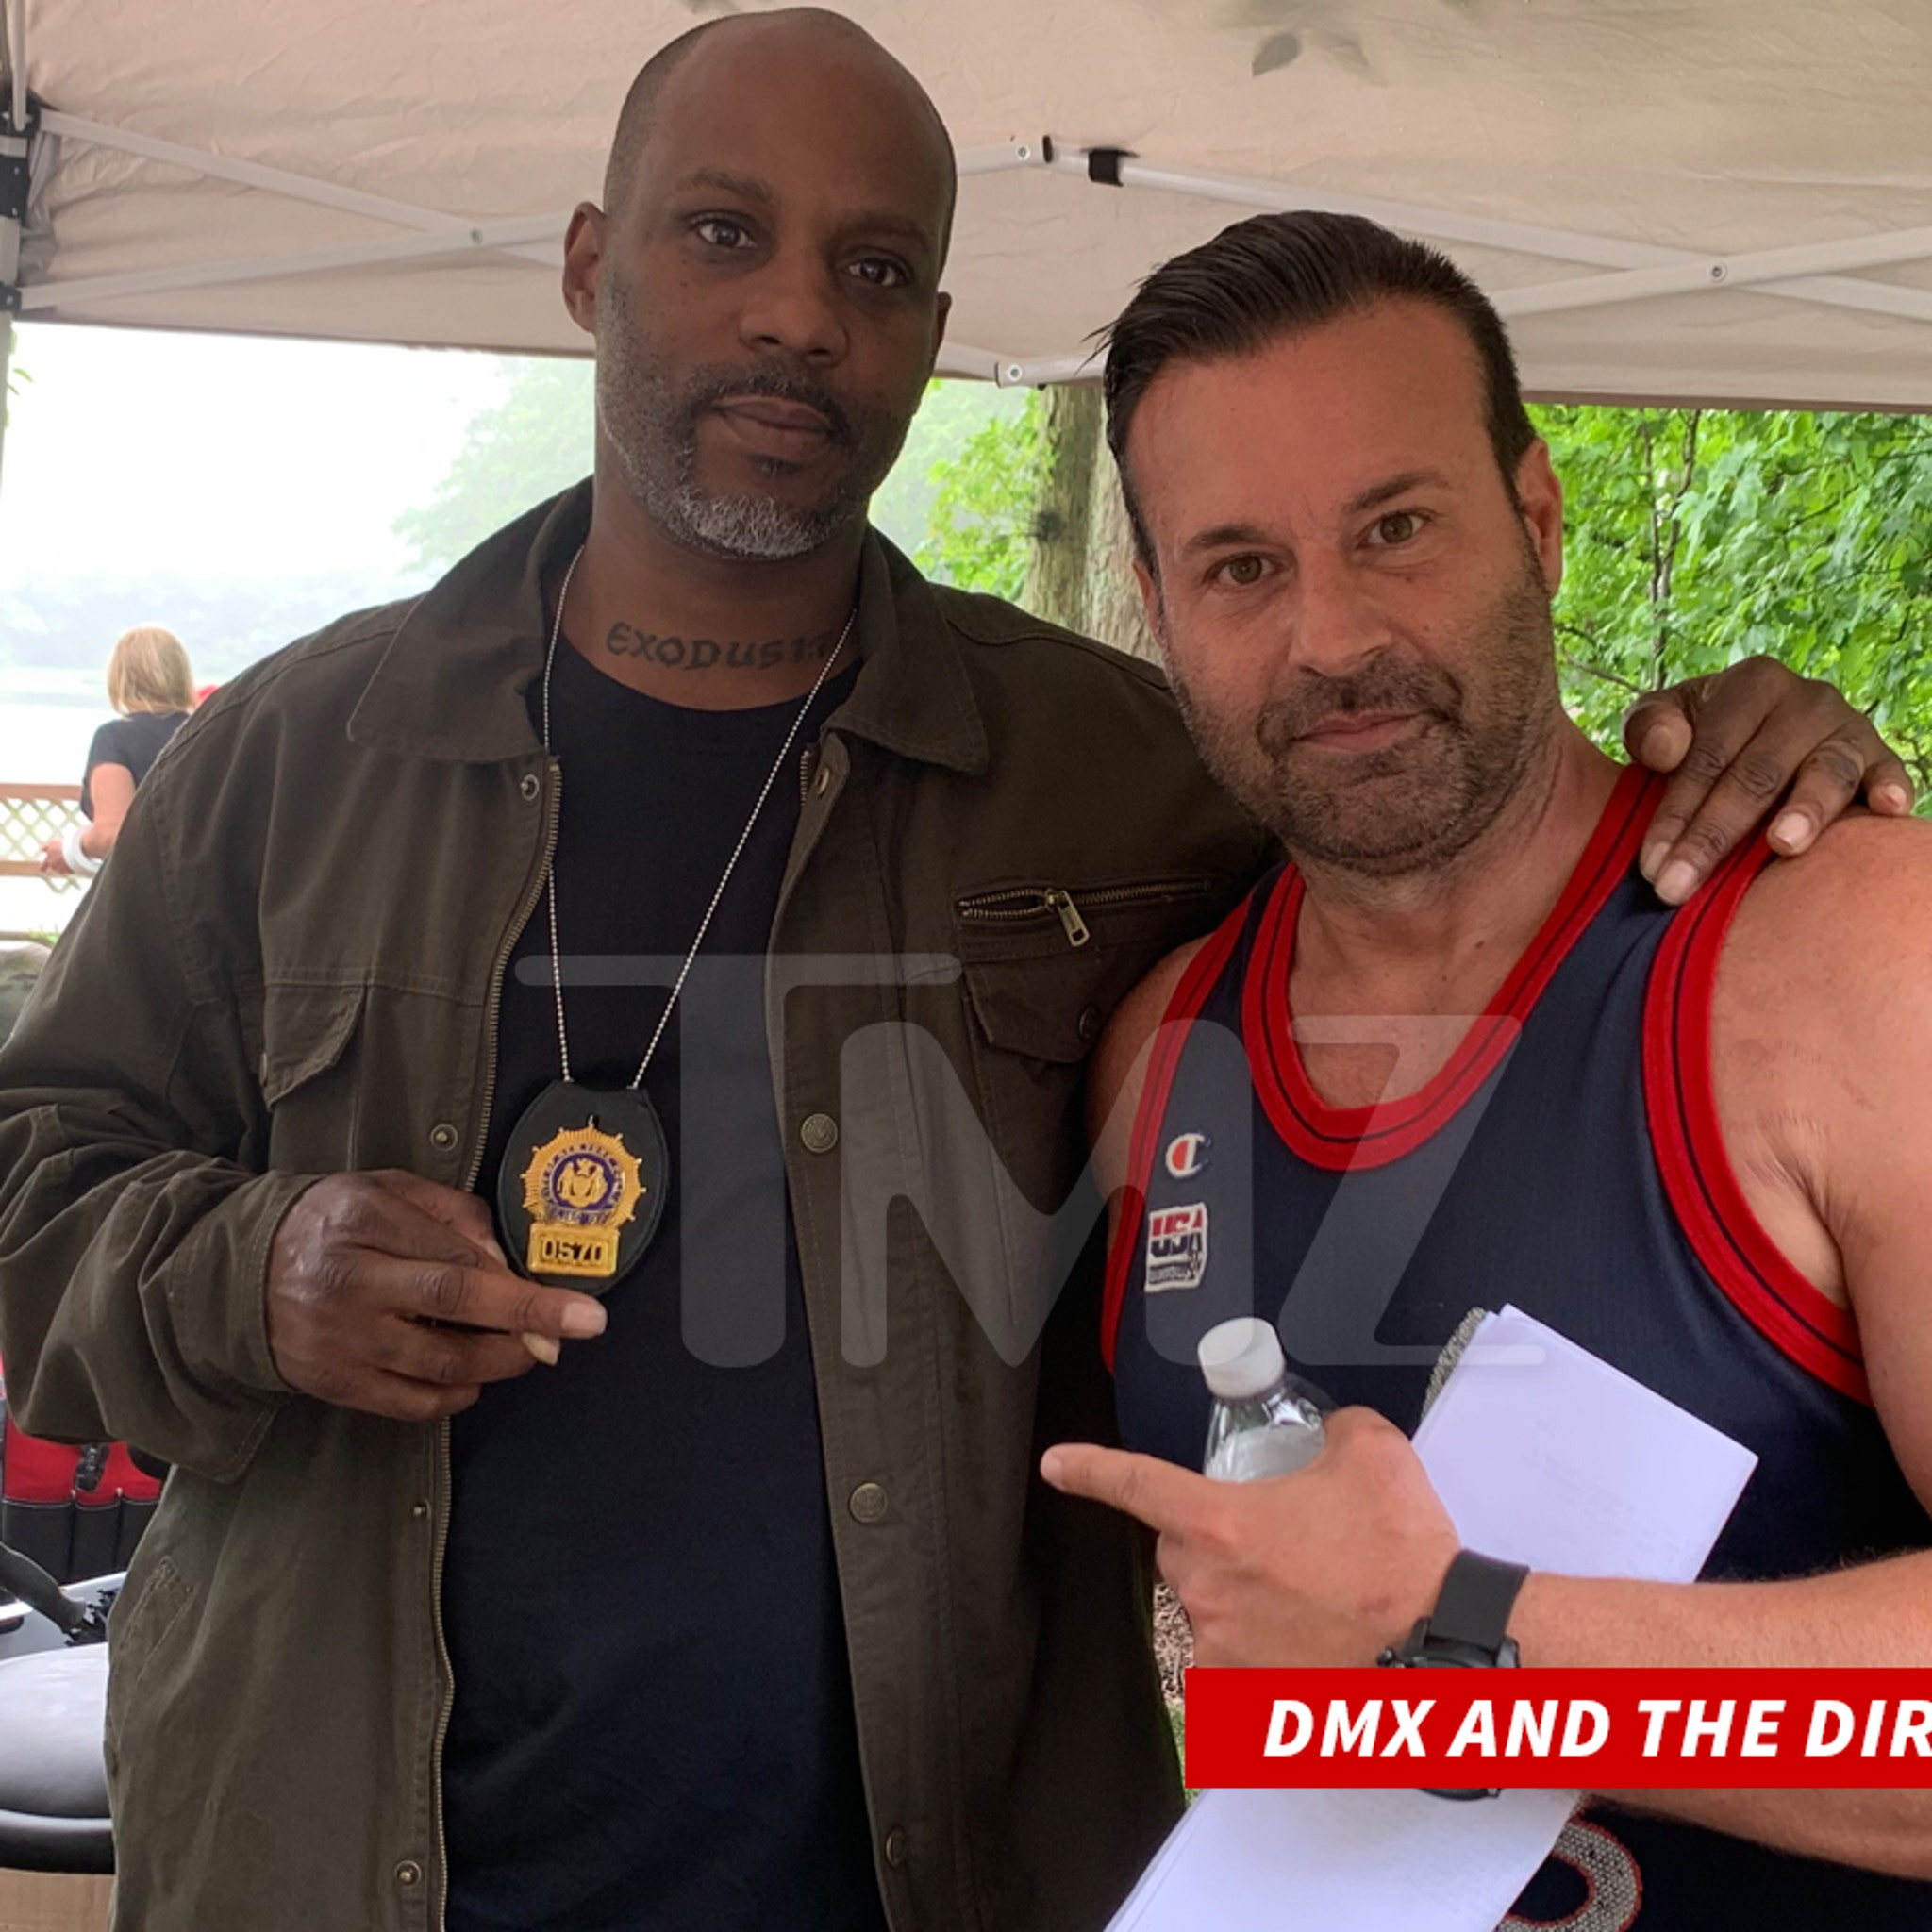 DMX Reports for Duty as Detective on Set of 'Chronicle of a Serial